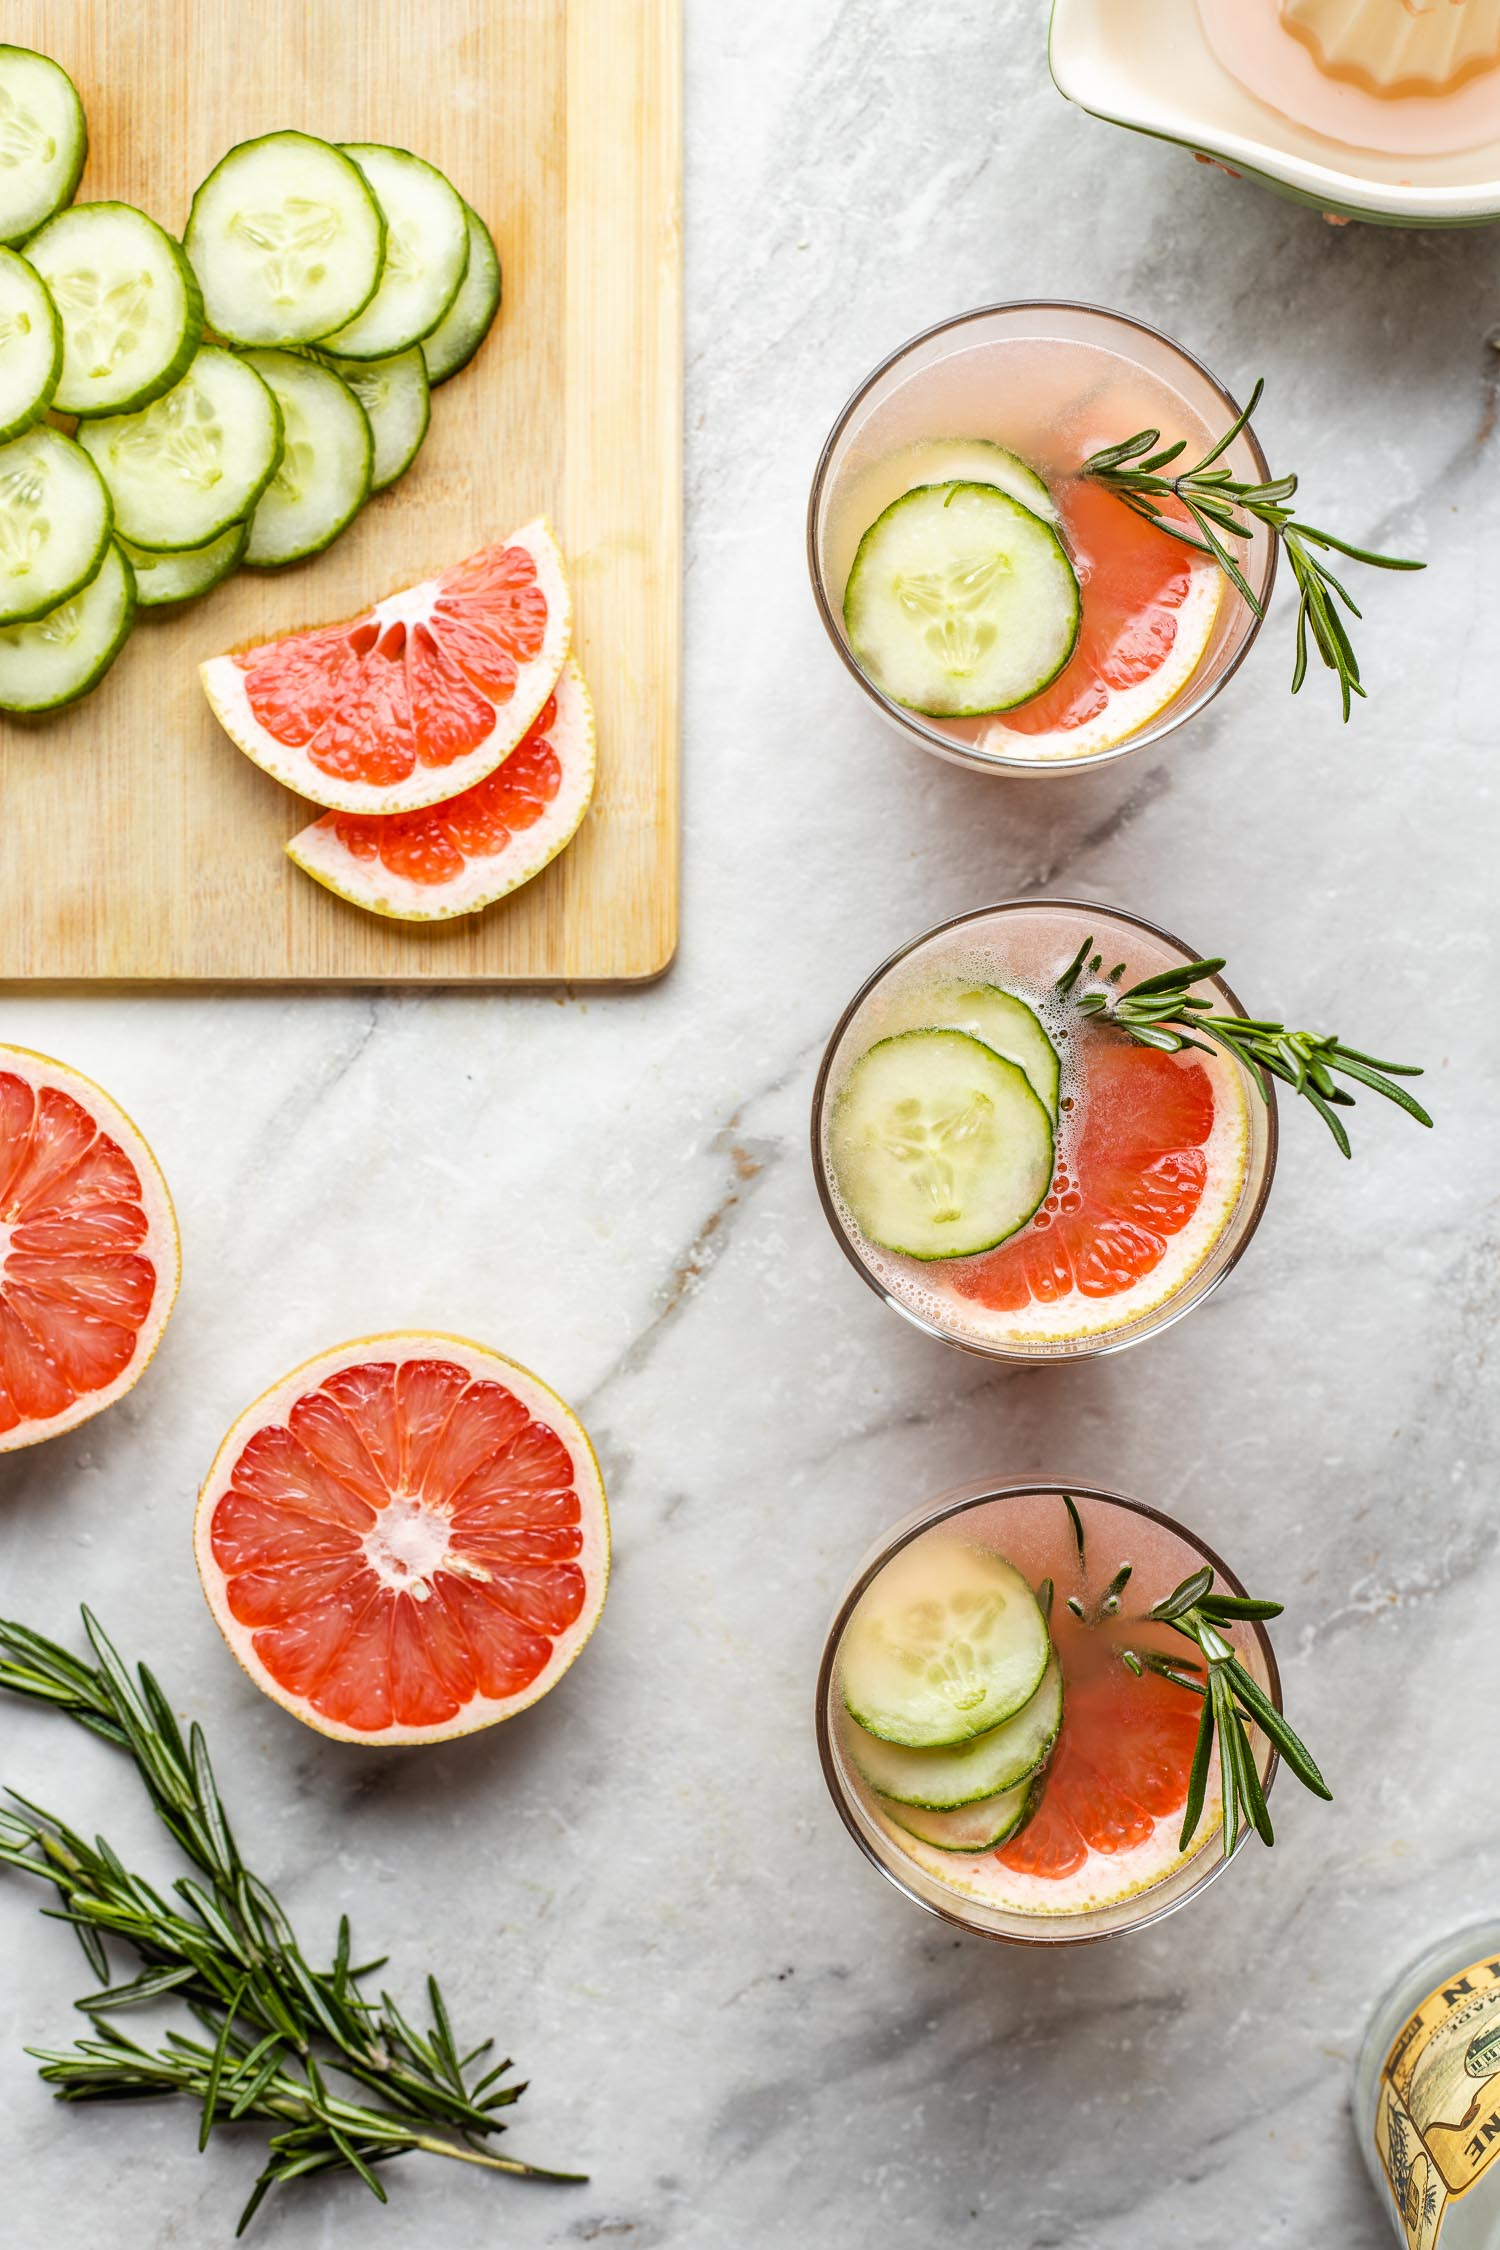 low carb gin and juice cocktails marble surface cutting board with garnishes grapefruit half